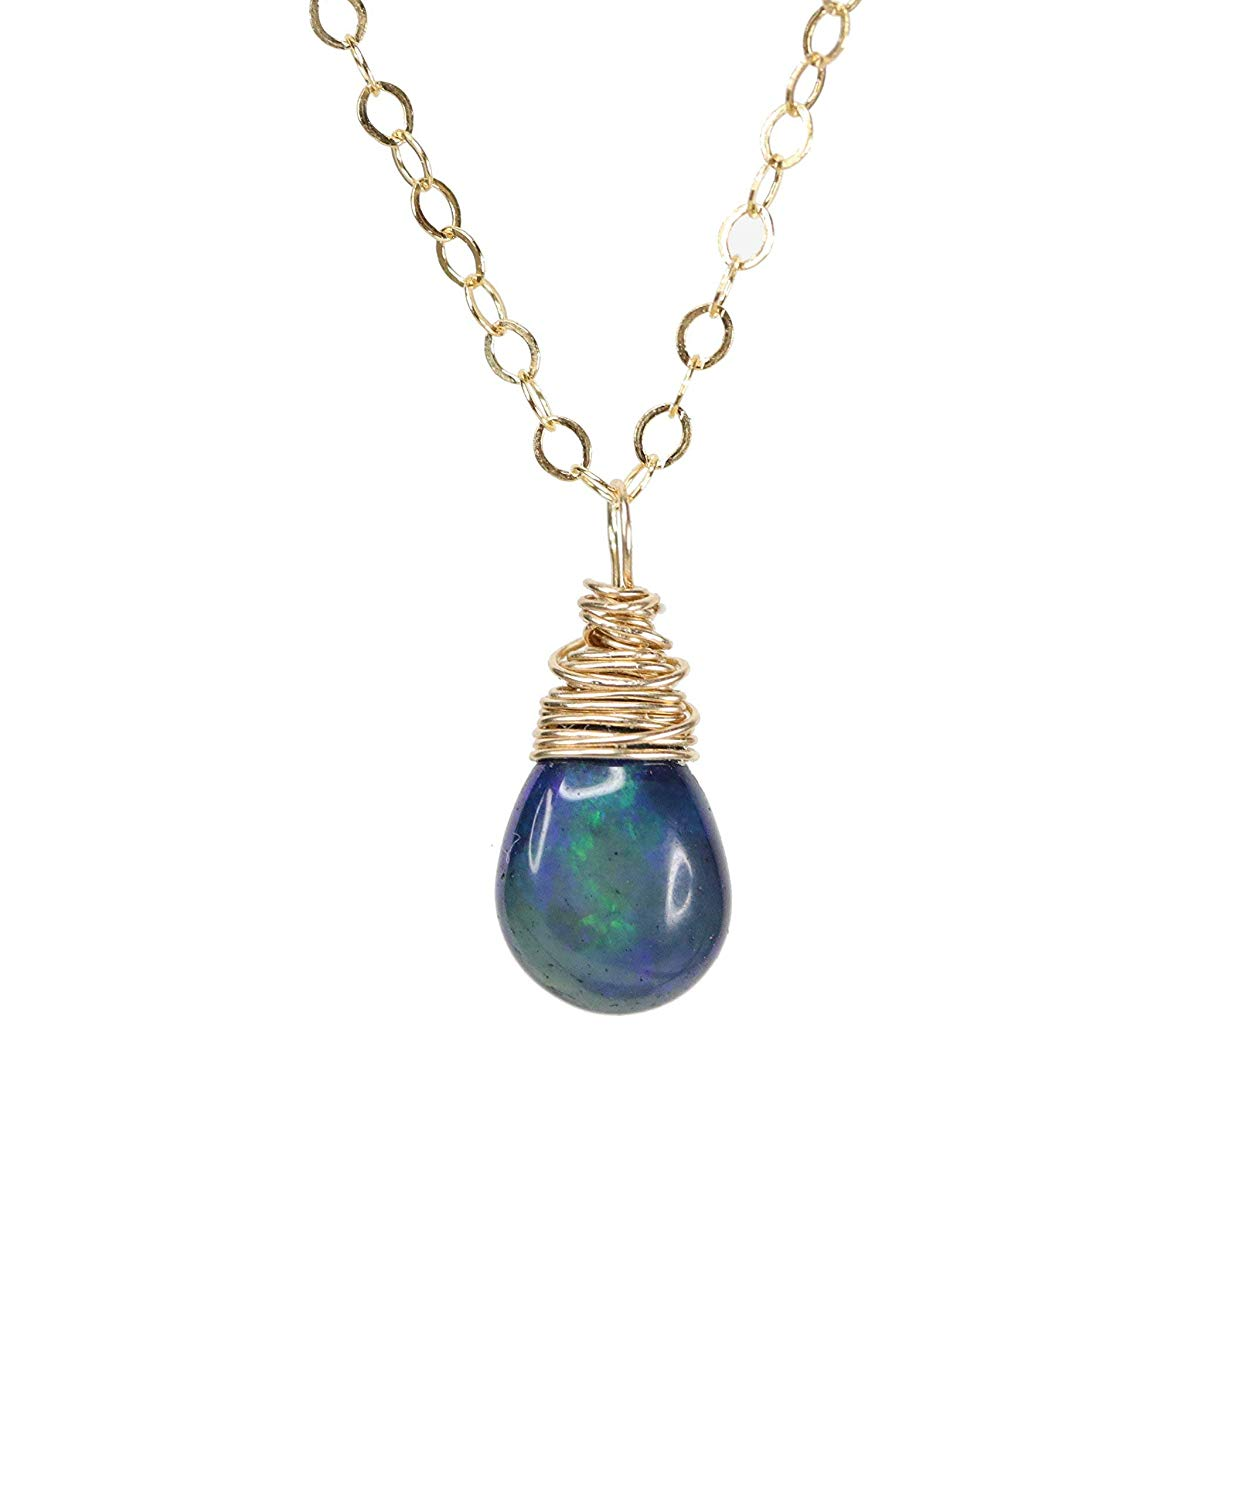 Get Quotations Real Blue Opal Gemstone Teardrop Pendant Dainty Necklace 14k Gold Filled 17